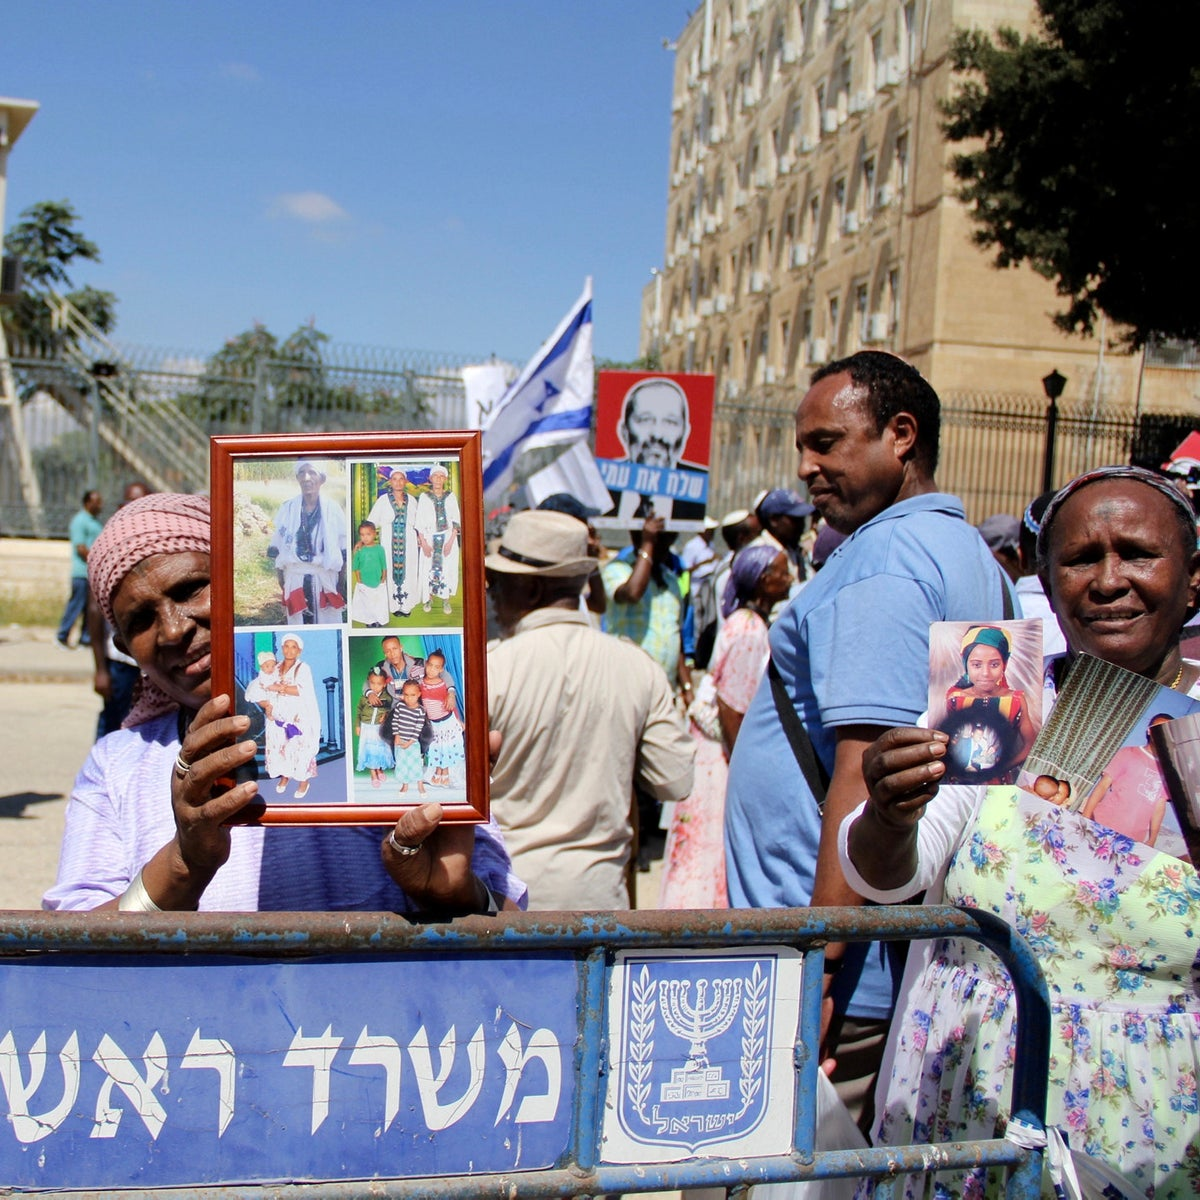 Members of the Ethiopian-Israeli community protesting outside the Prime Minister's Office in Jerusalem, July 2018.